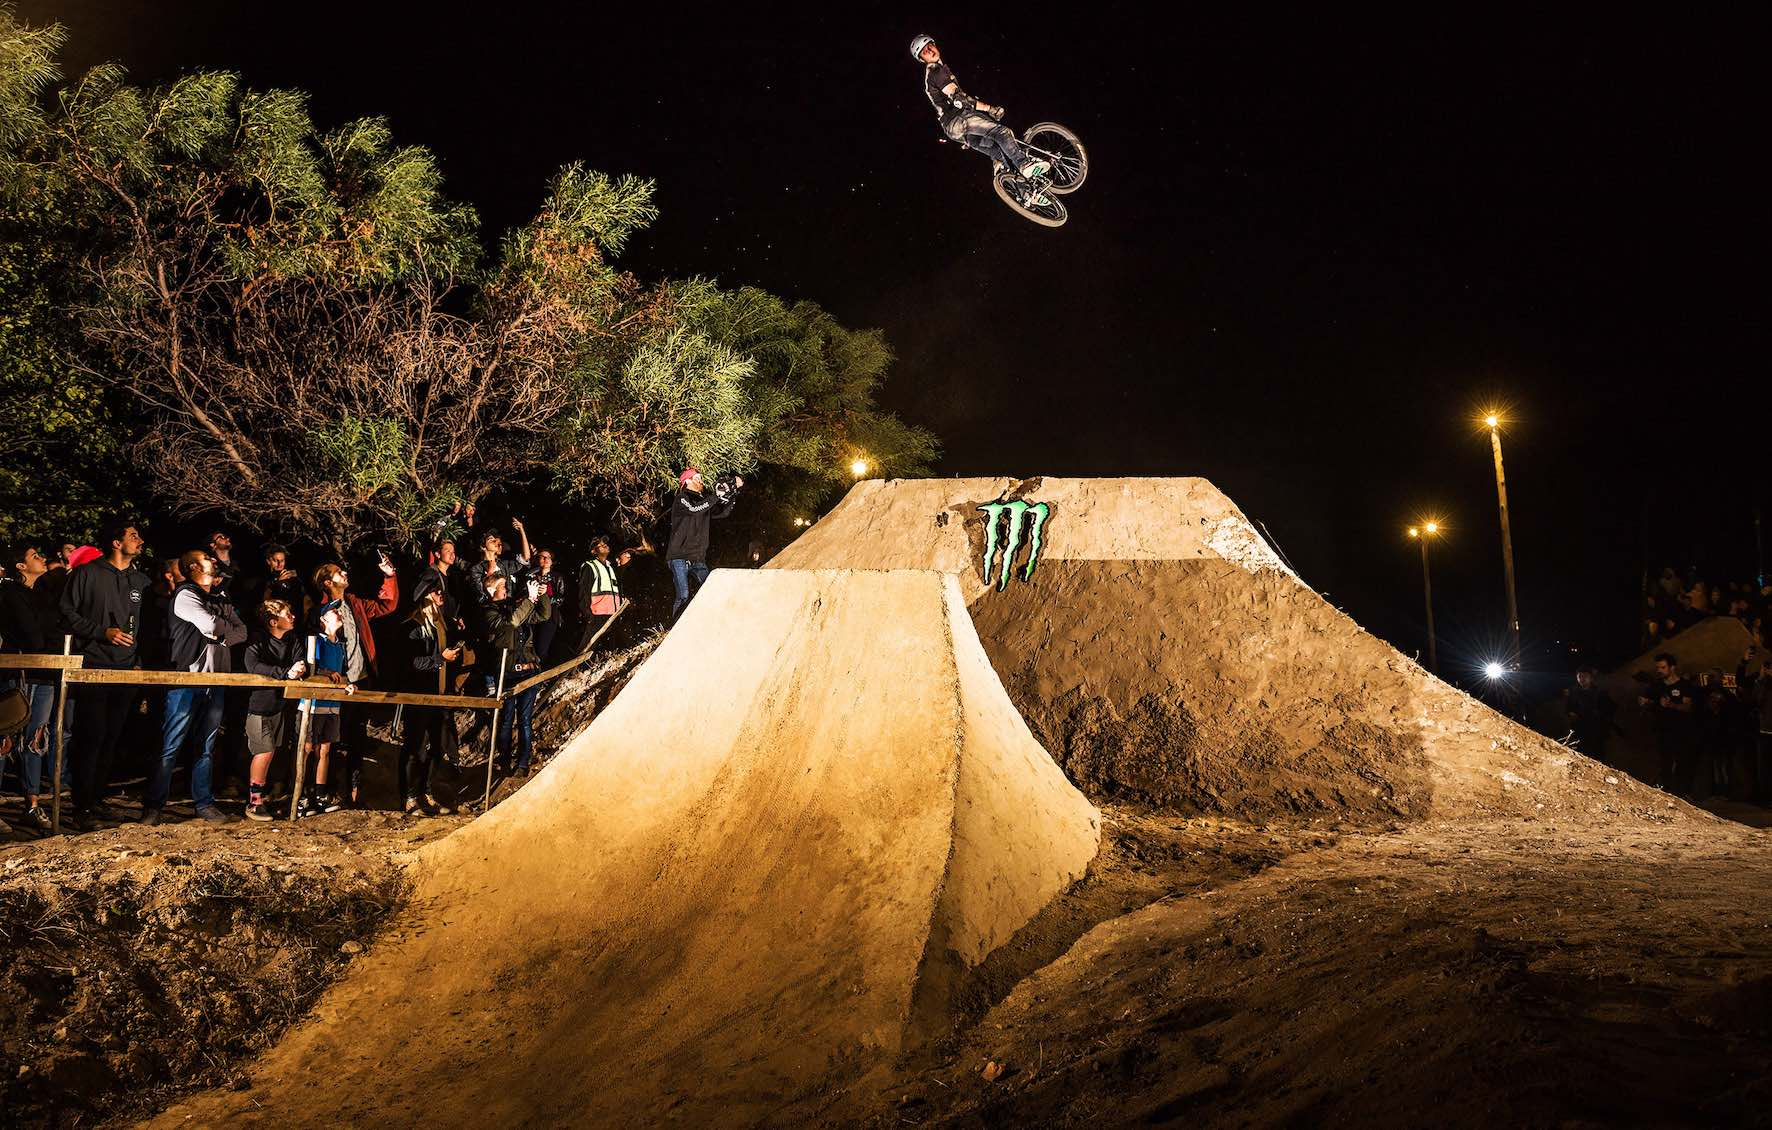 Cornel Swanepoel performing the 720 in the Night Harvest MTB Best Trick